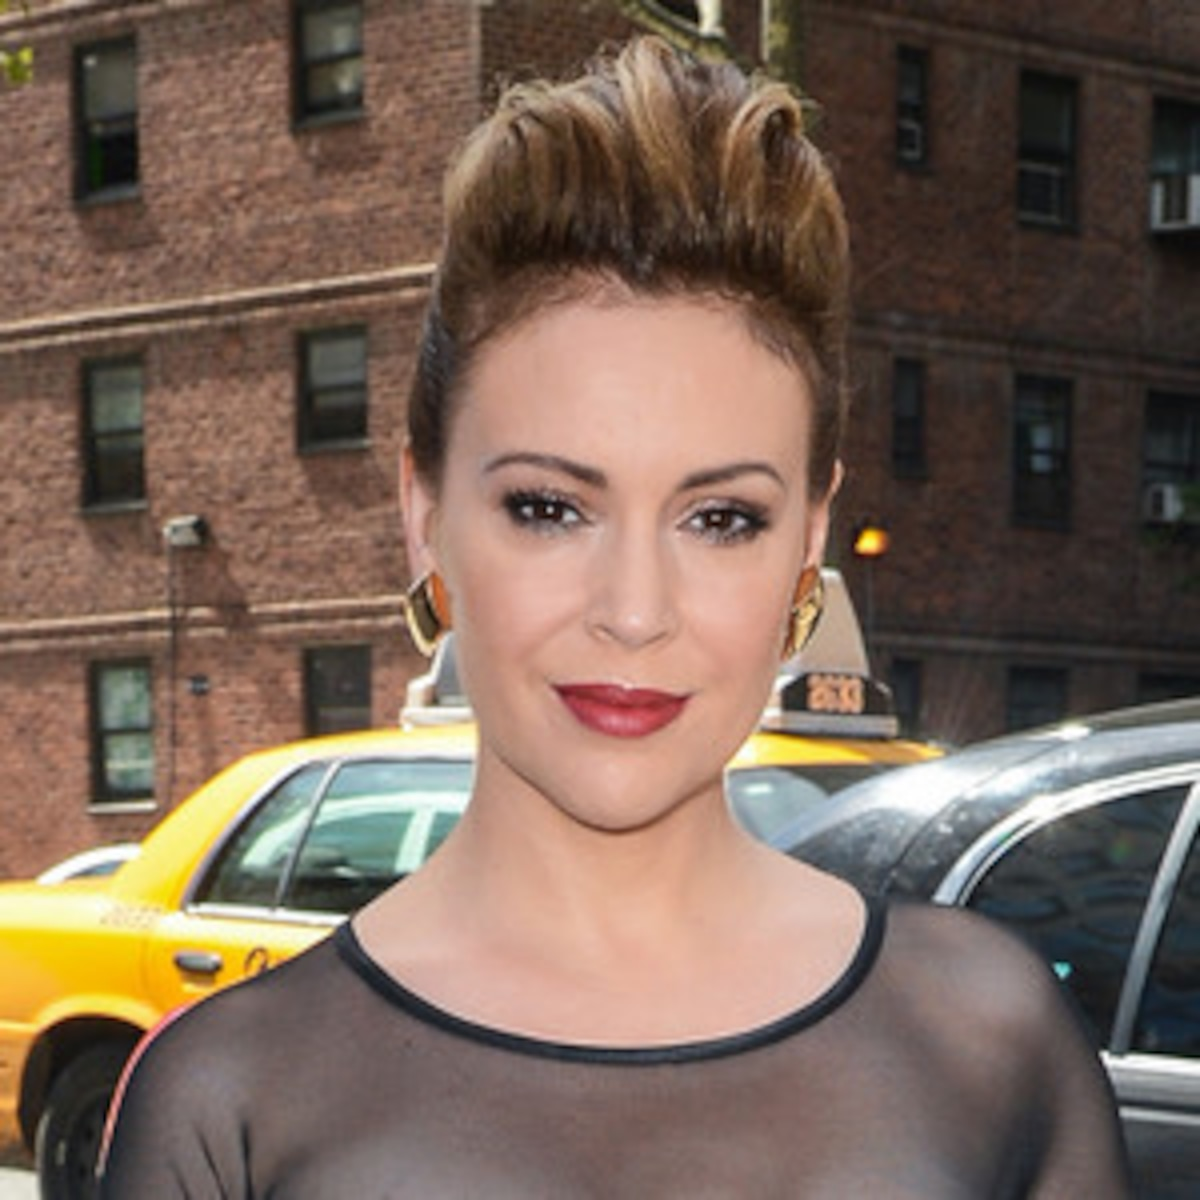 Alyssa Milano Leaked Photos alyssa milano flaunts cleavage, explains leaked sex tape | e